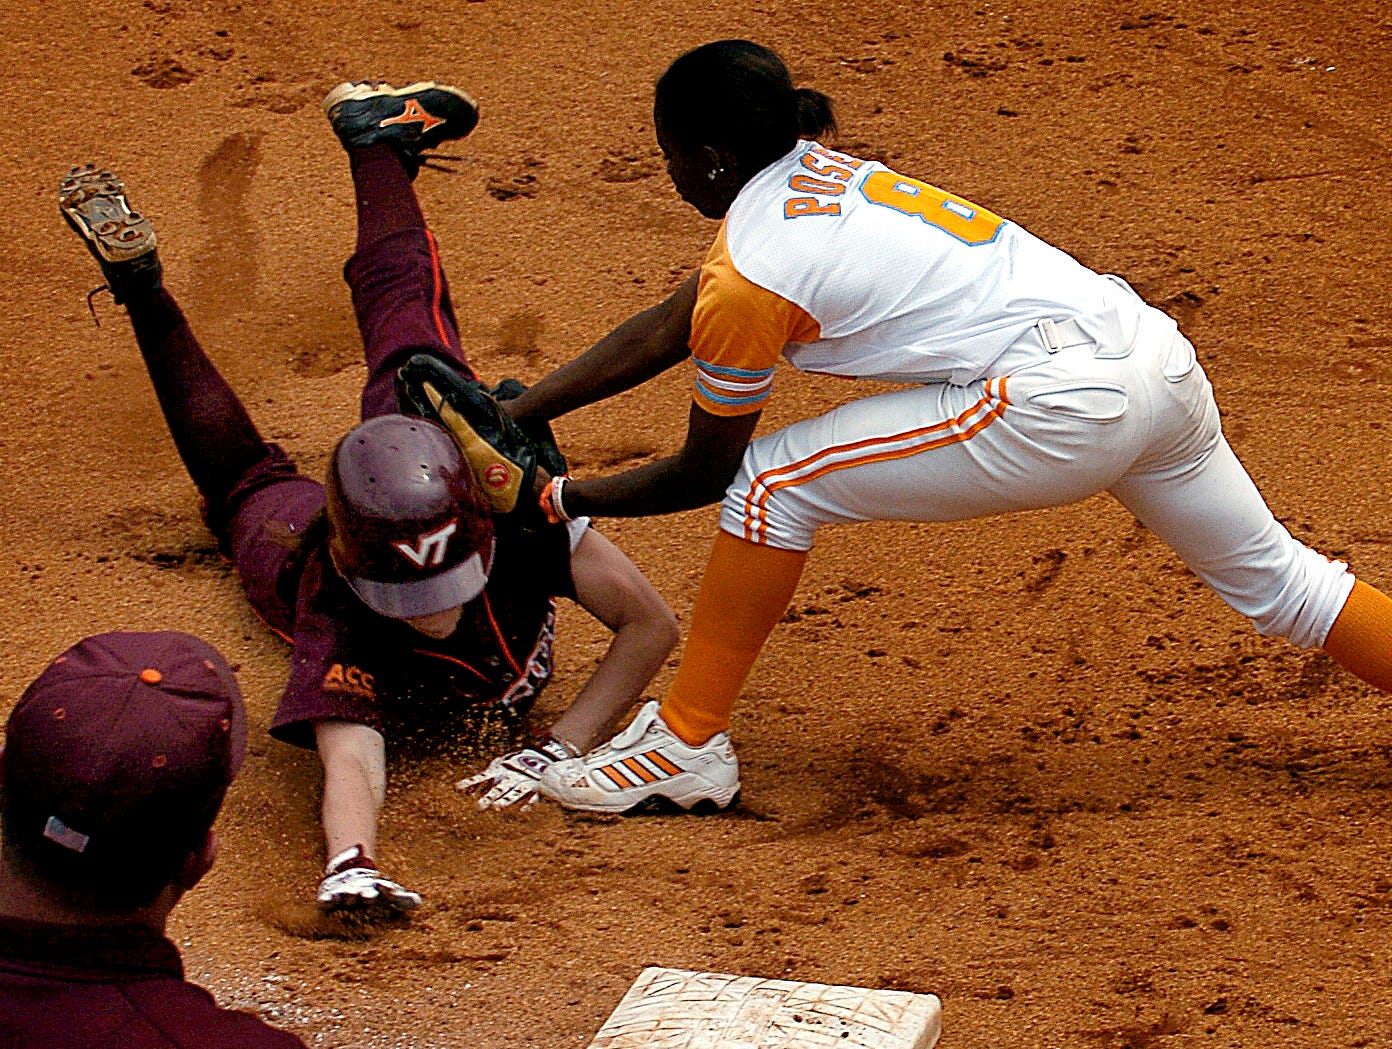 Lady Vols Kenora Posey (8) tags out Virginia Tech's Crystal Beach (17) before she can reach third base in the second inning Saturday. Tennessee beat the Virginia Tech Hokies 9-1 to advance in the regionals  at Tyson Park.